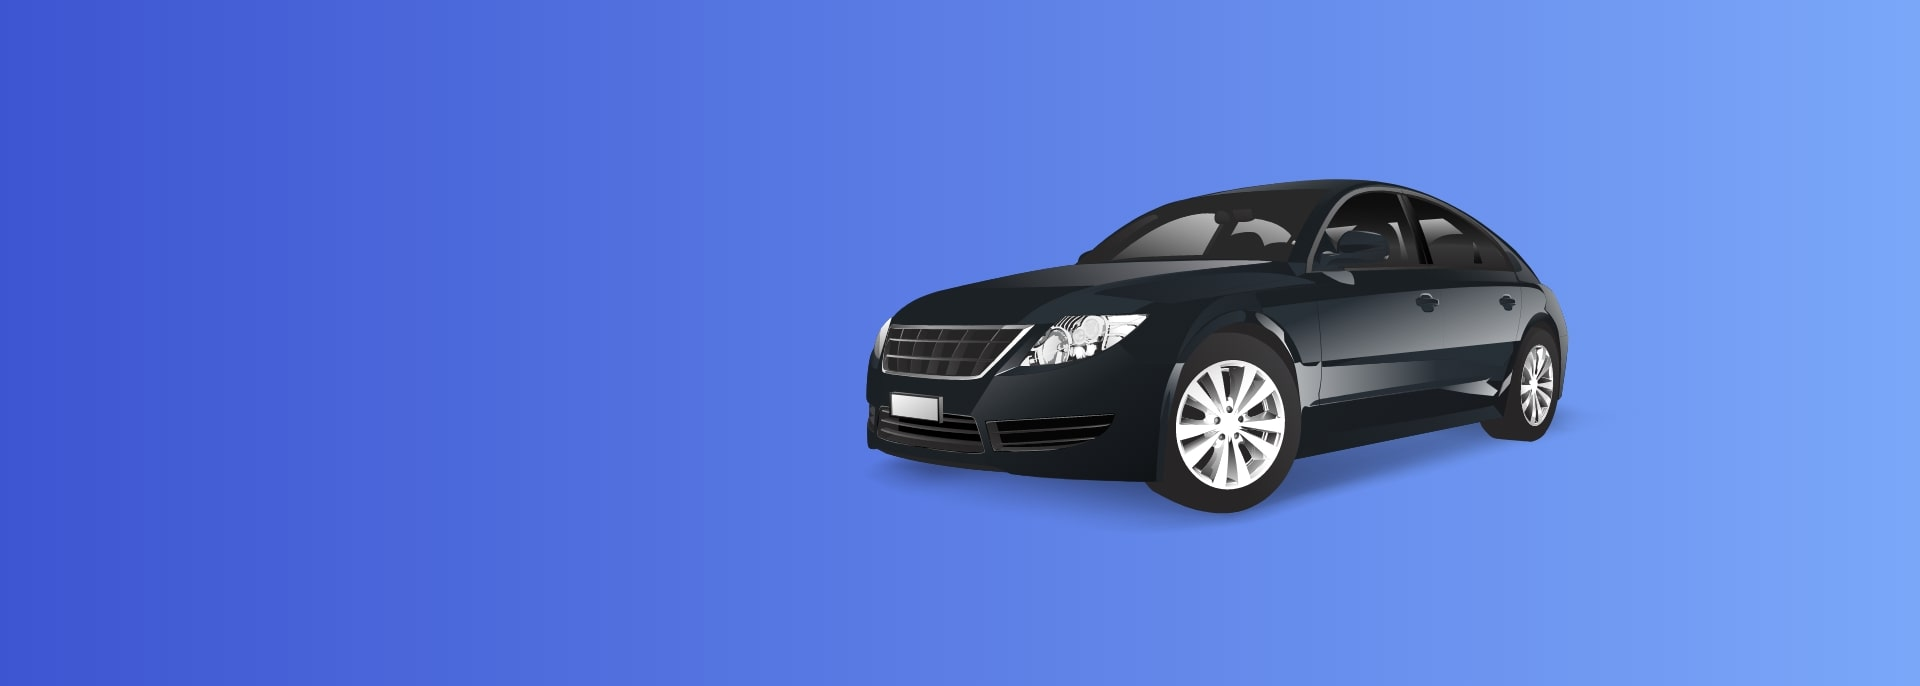 Leasing conditions and facilities for all types of used vehicles